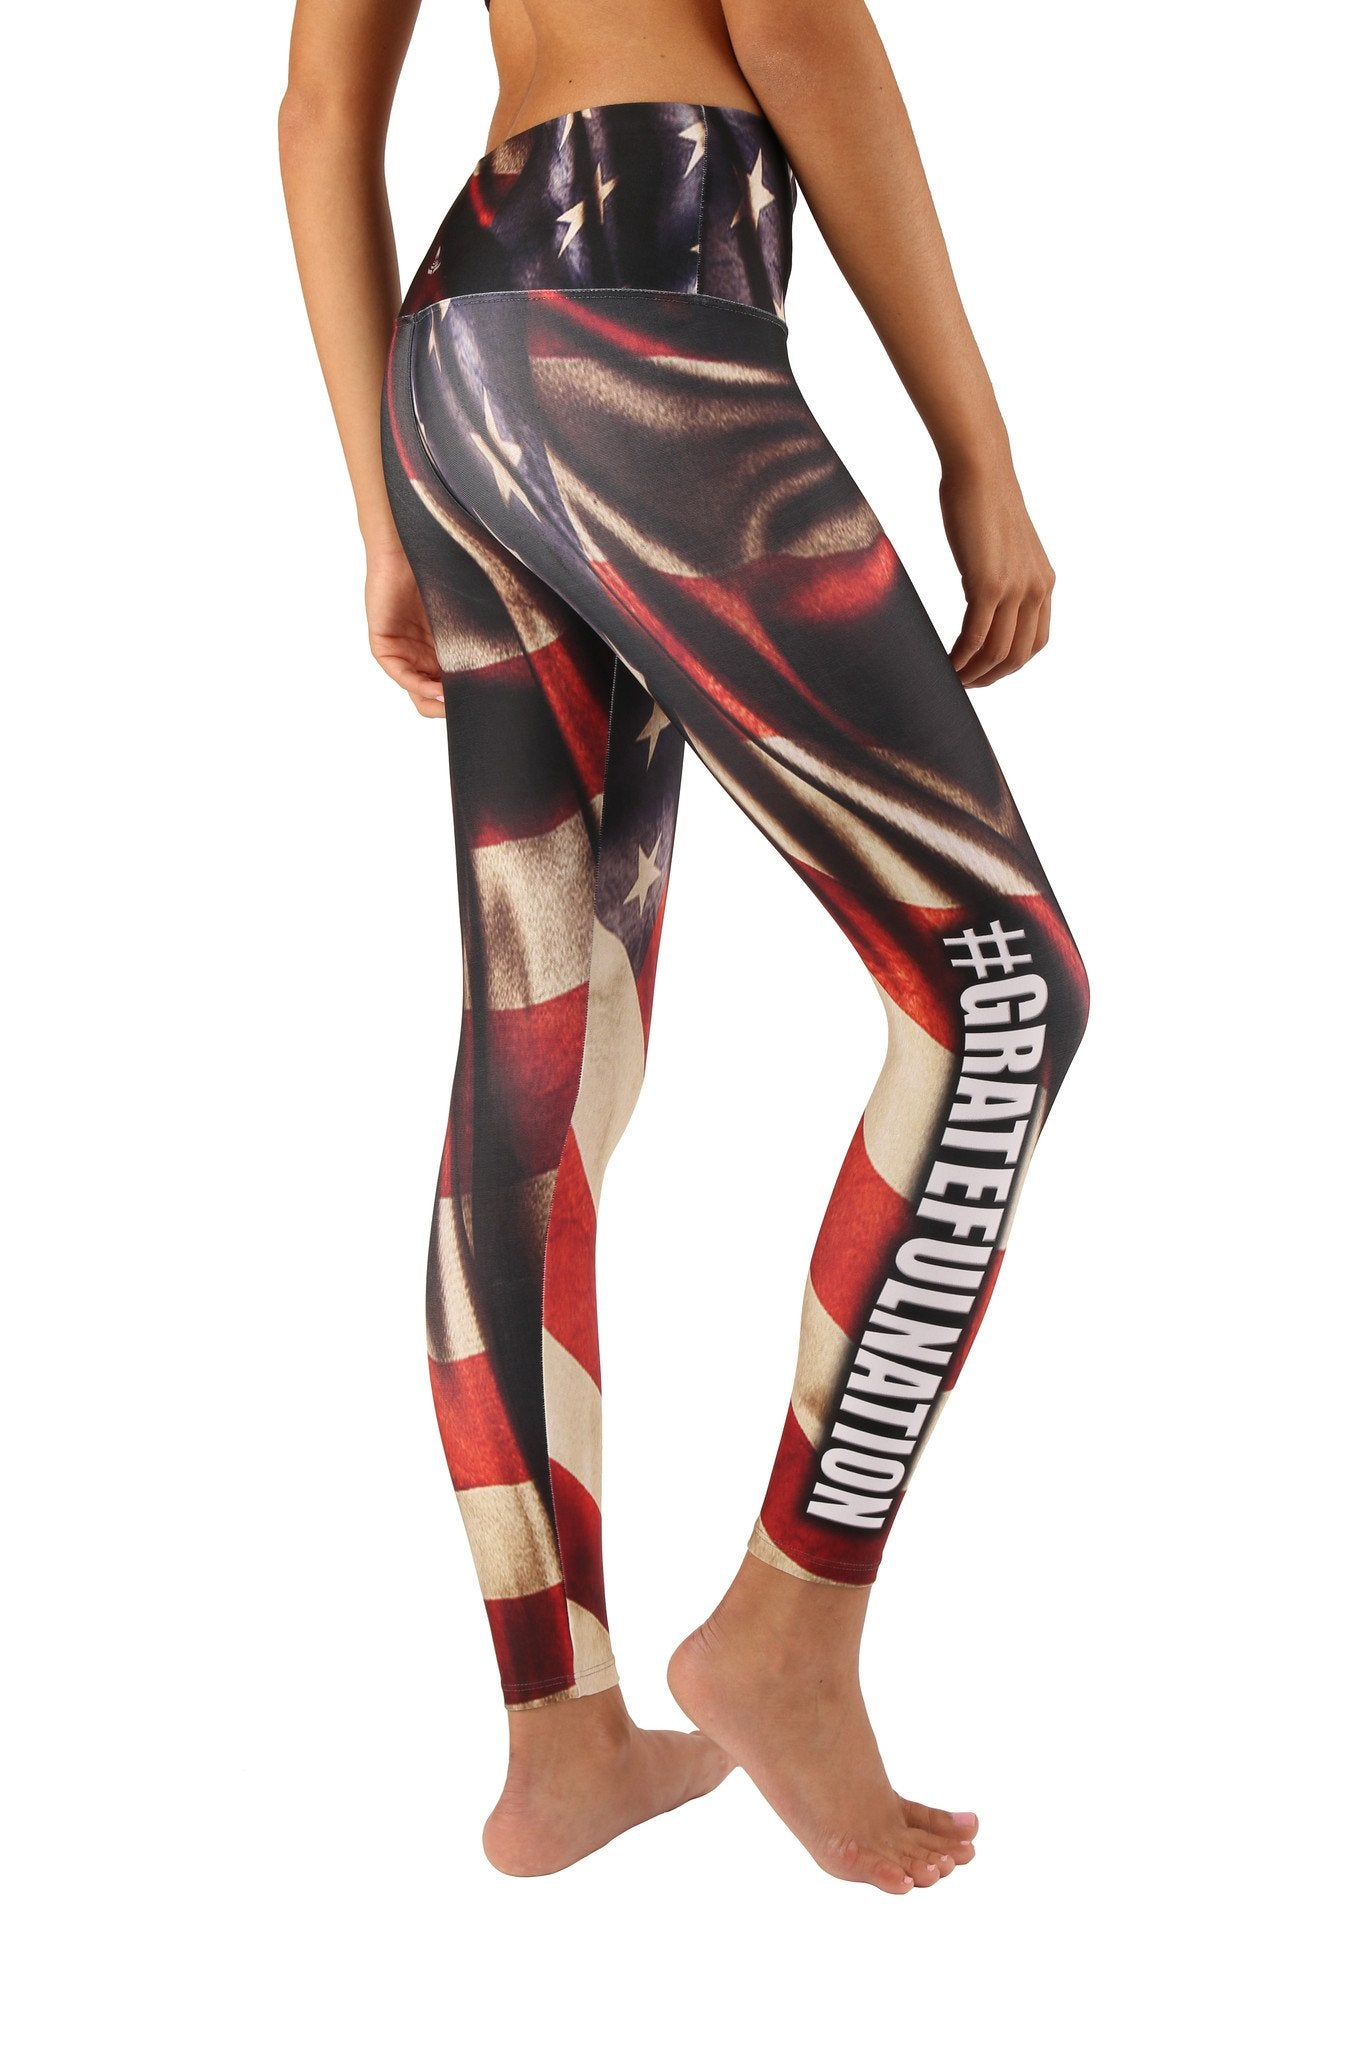 Grateful Nation Leggings - Patriotic Leggings for the Gym, Run, Marathon, Race - Lavaloka